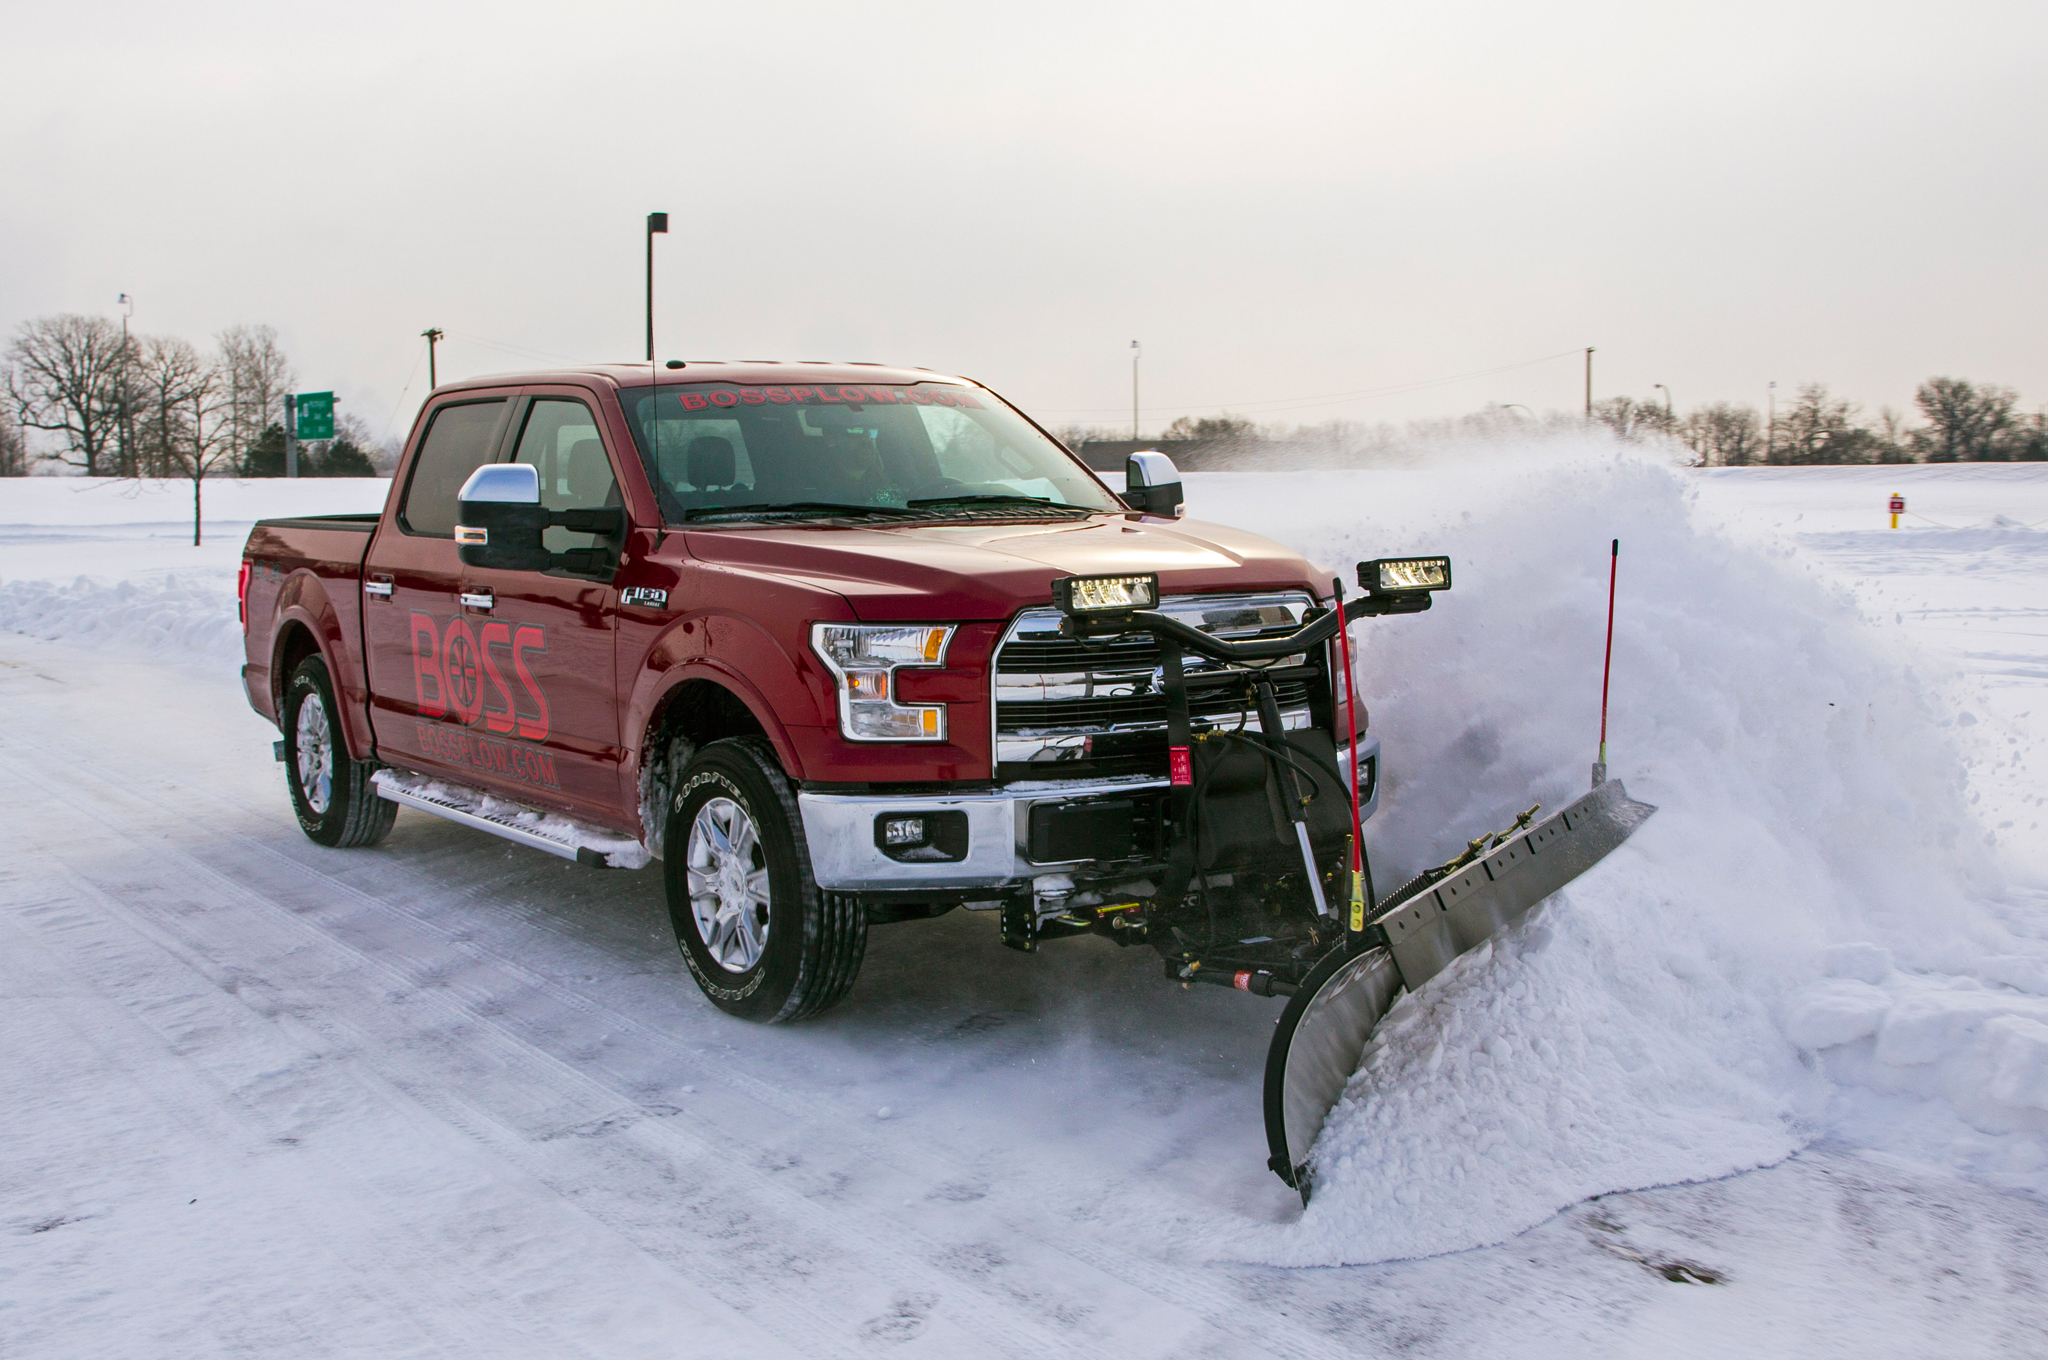 Ford F 150 Snow Plow >> 2015 Ford F 150 Snow Plow Prep Kit Costs Just 50 Motor Trend